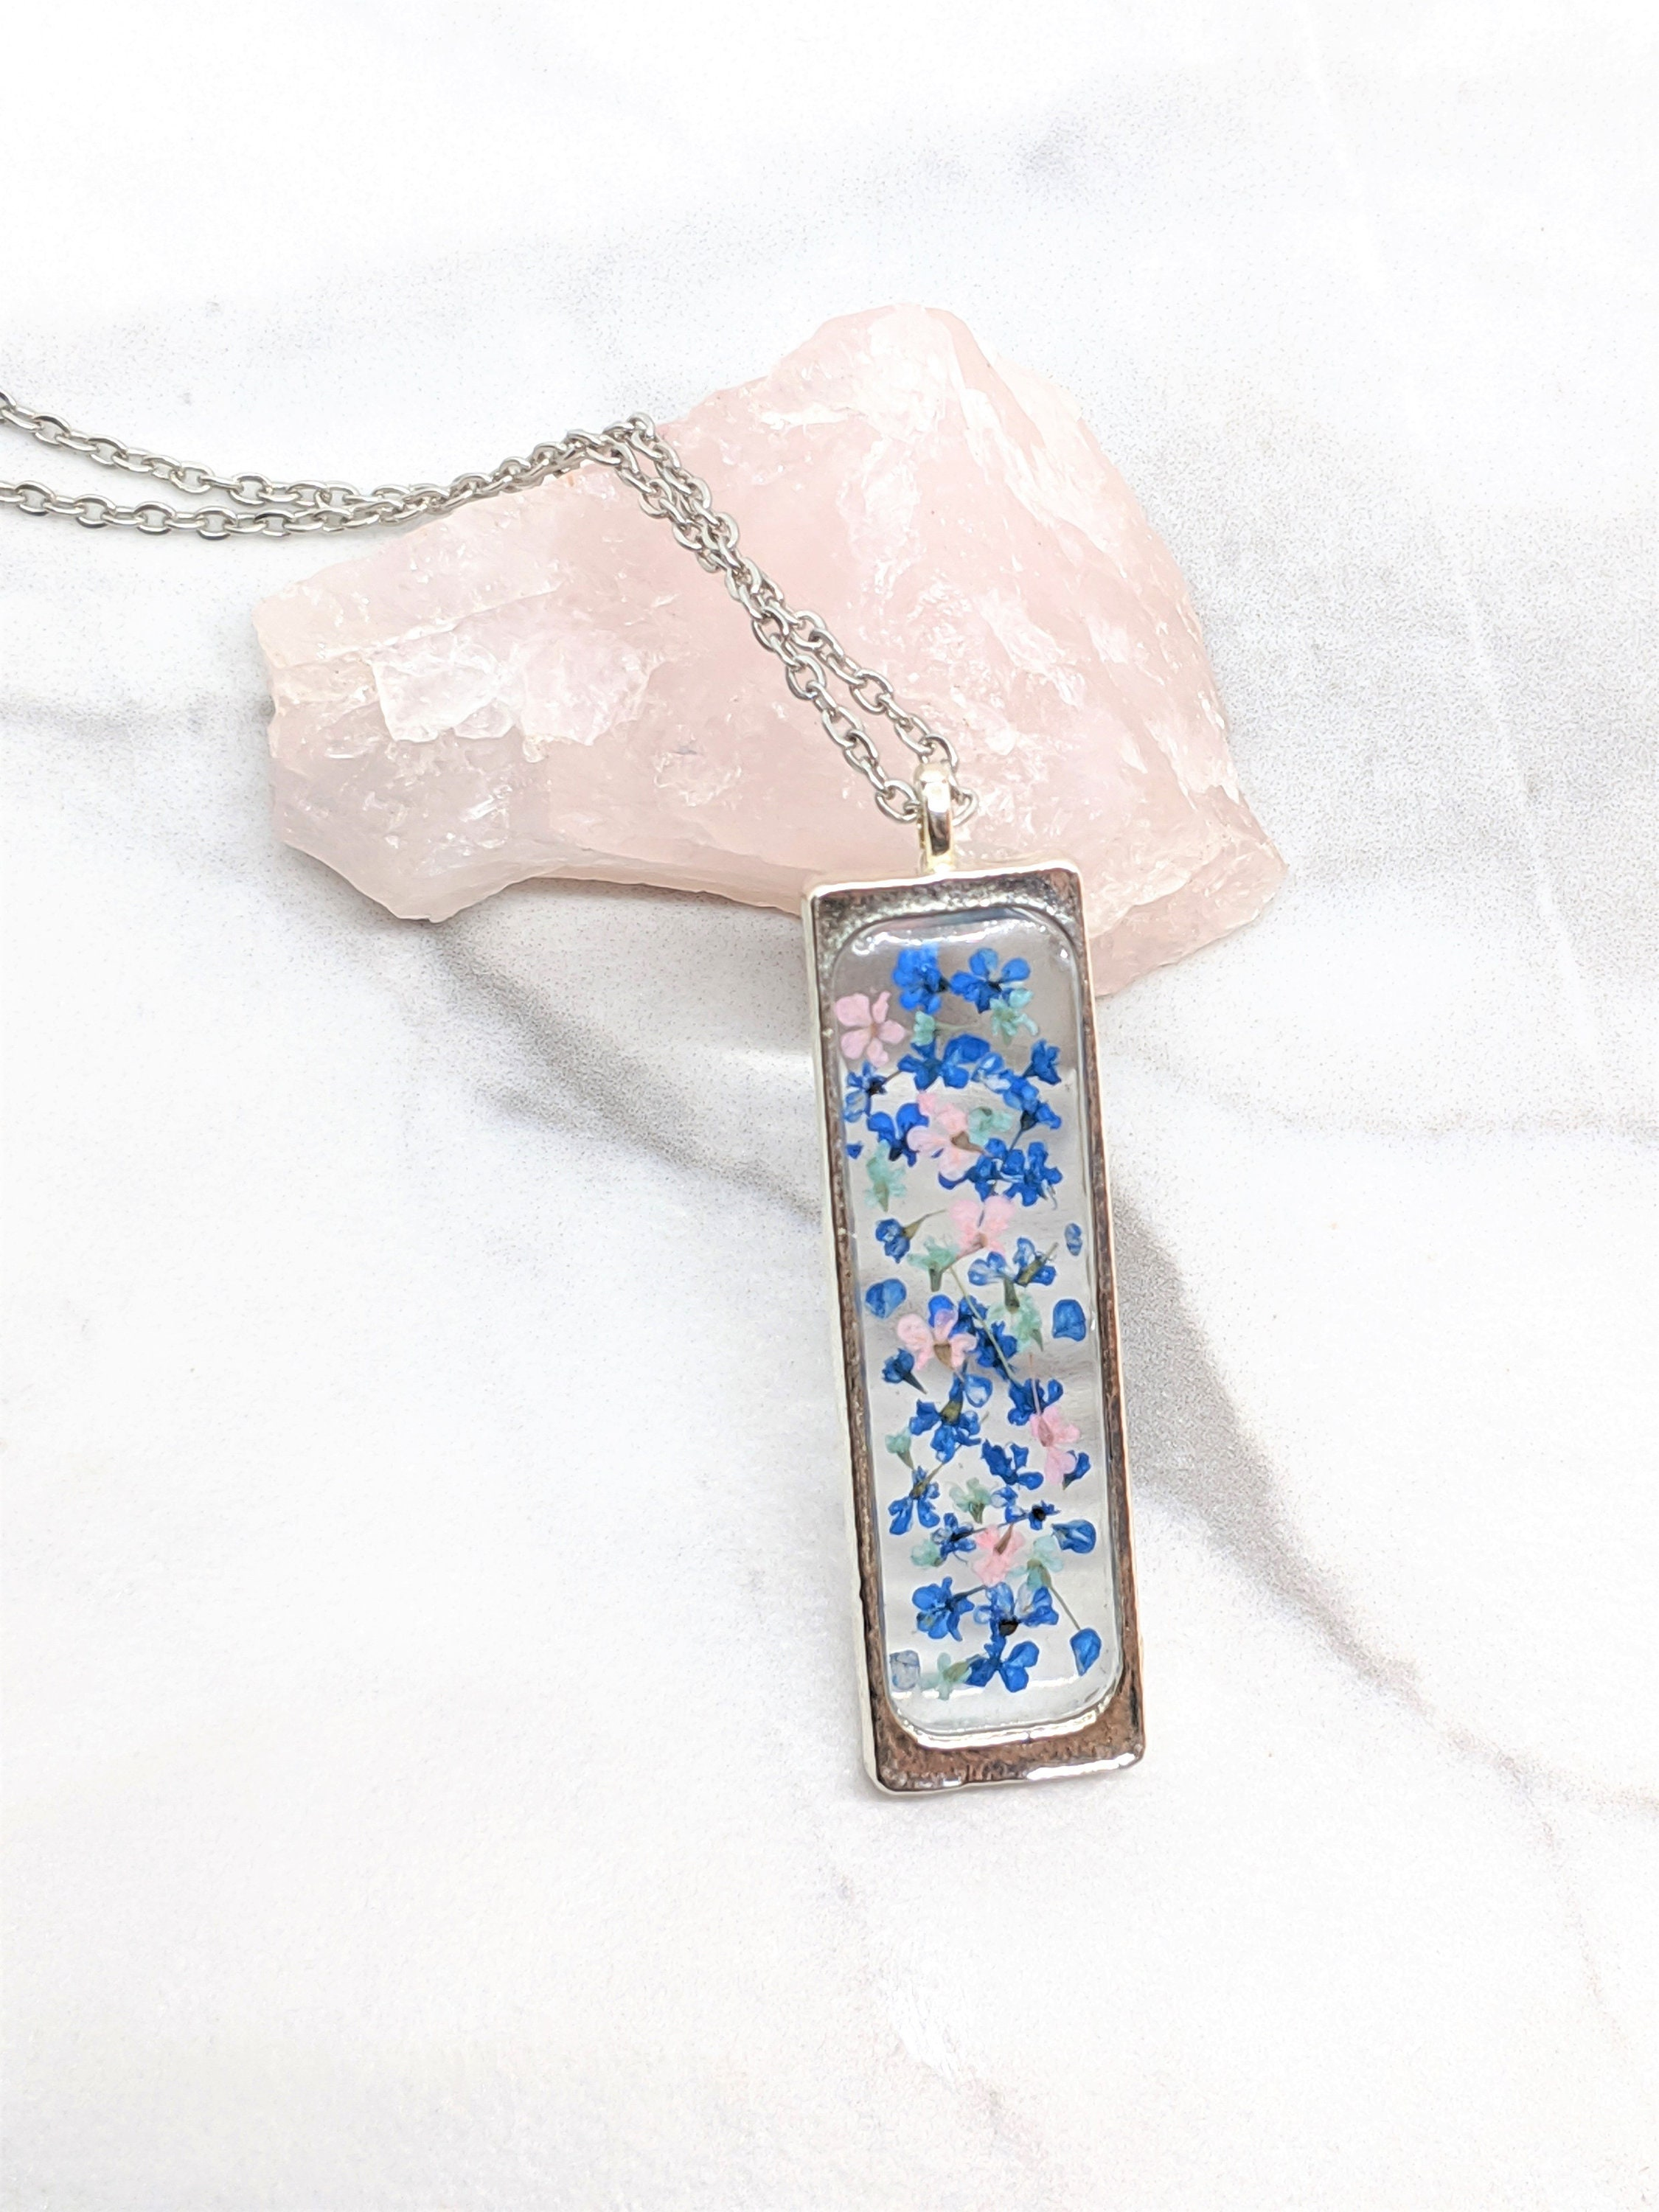 Real Pressed Flowers Tear Drop Pendant on Leather Cord Necklace Jewelry Gift A66